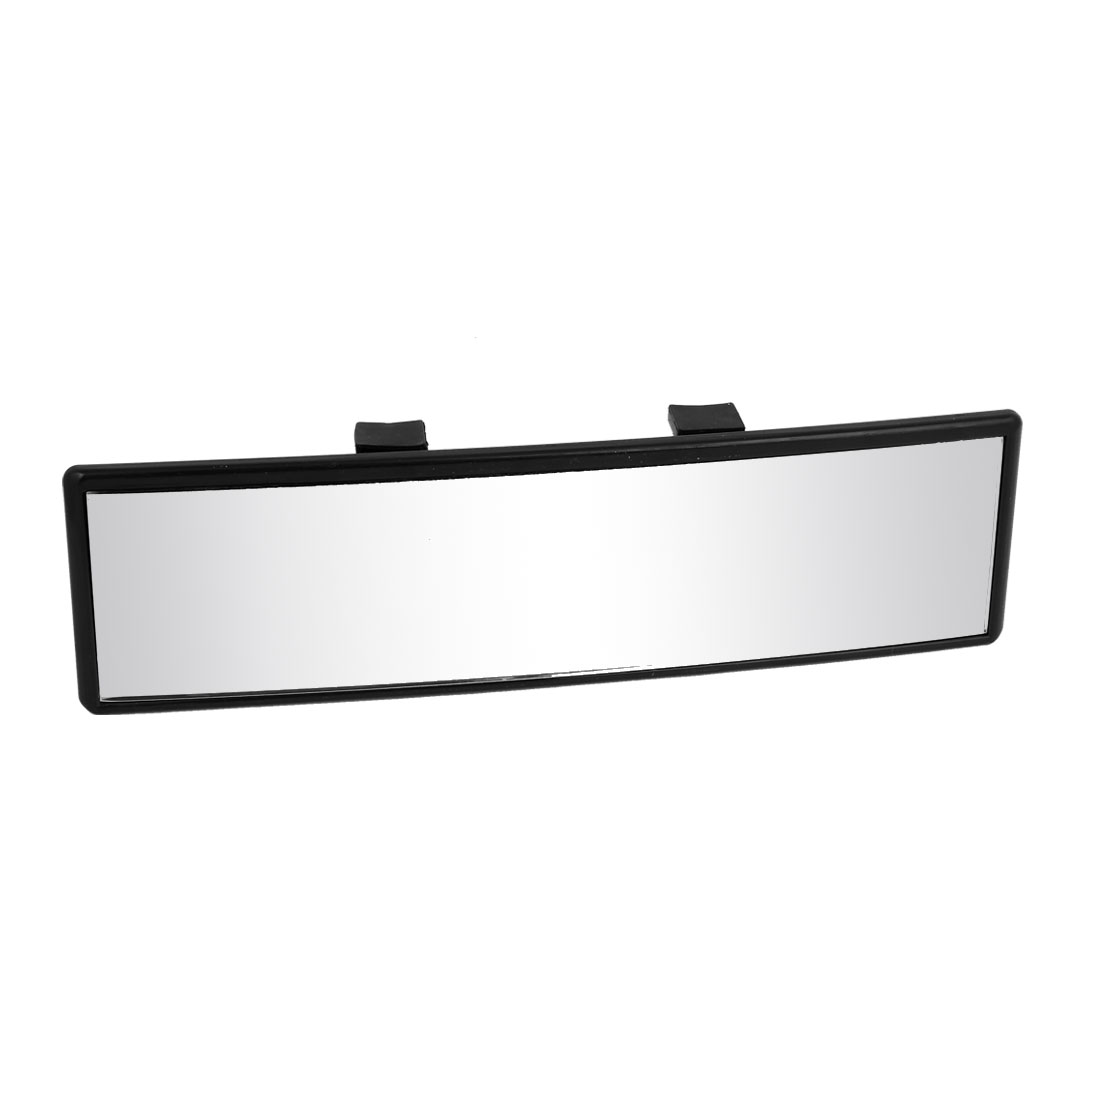 24cm x 6.5cm Black Paltic Shell Curve Clip on Auto Car Interior Rear View Mirror